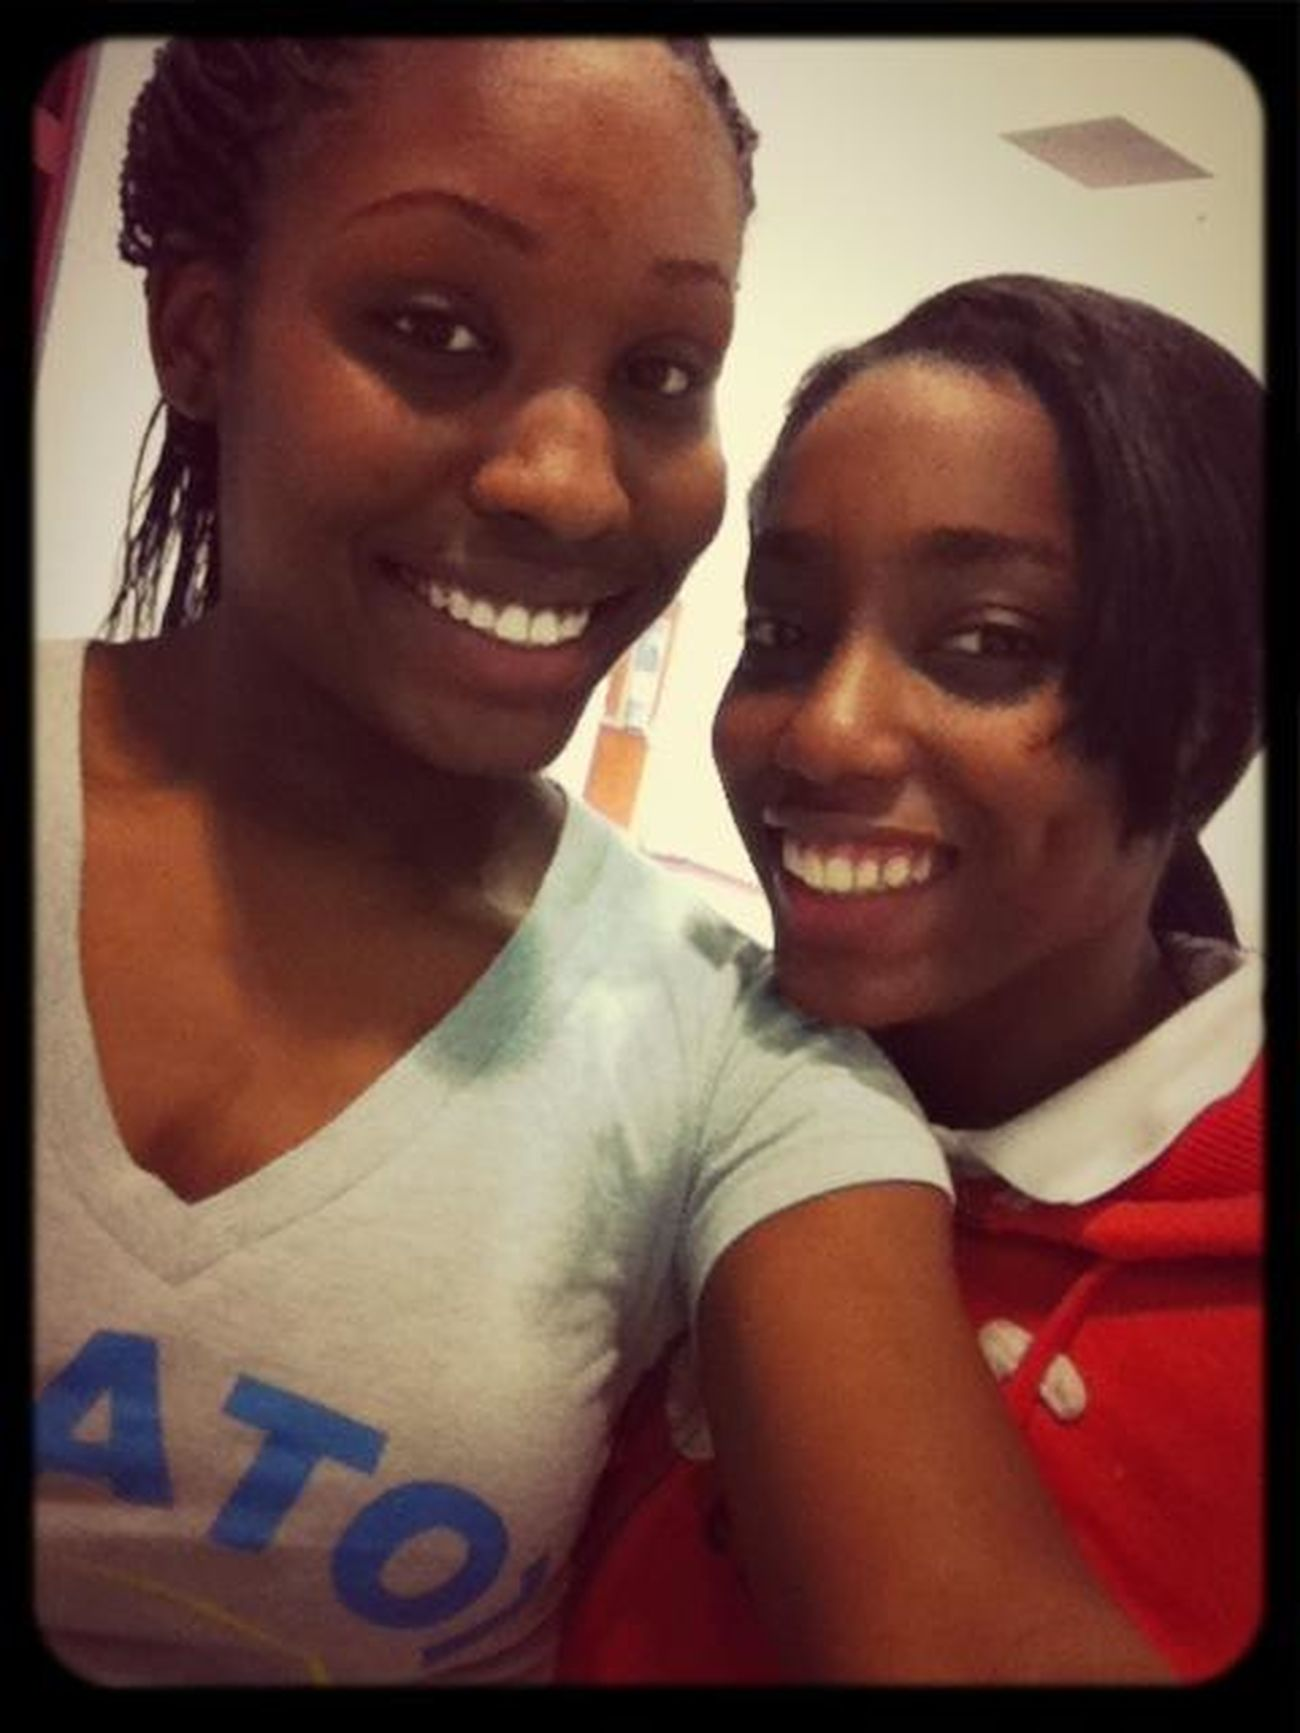 Just leaving practice . Y'all follow my hunny @kera_5 .